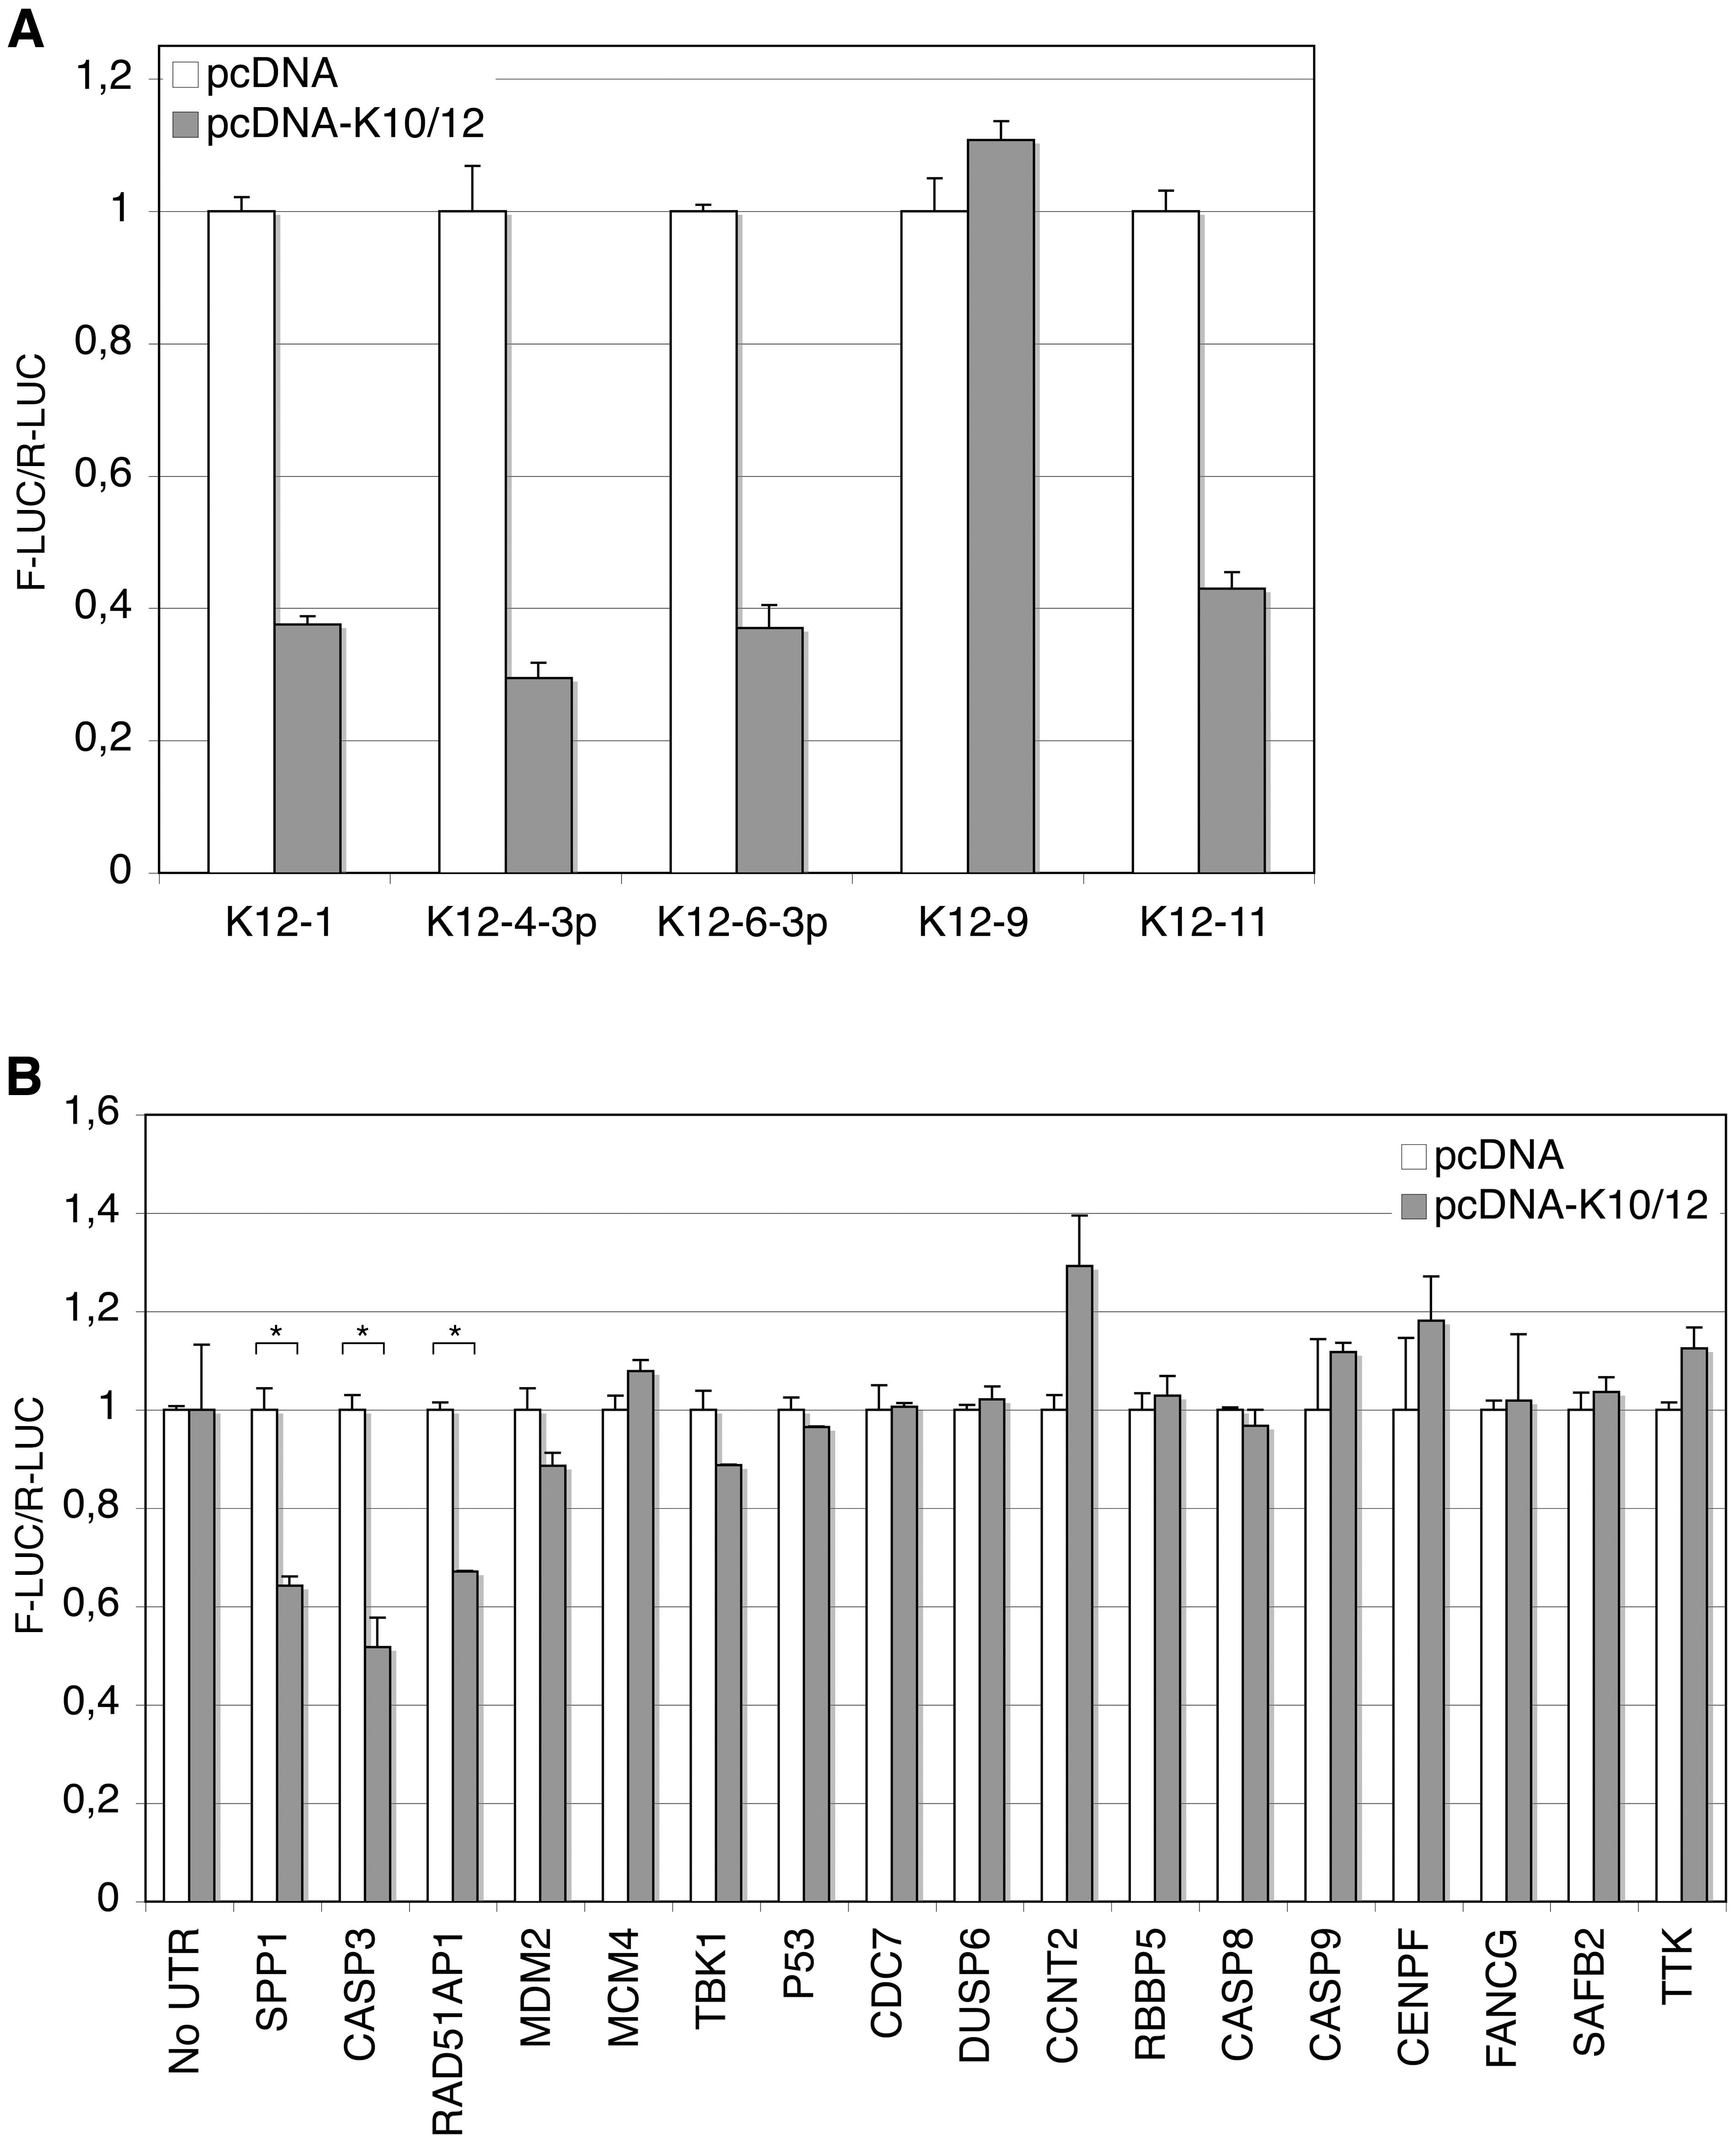 Validation of putative targets of KSHV miRNAs by luciferase assays.